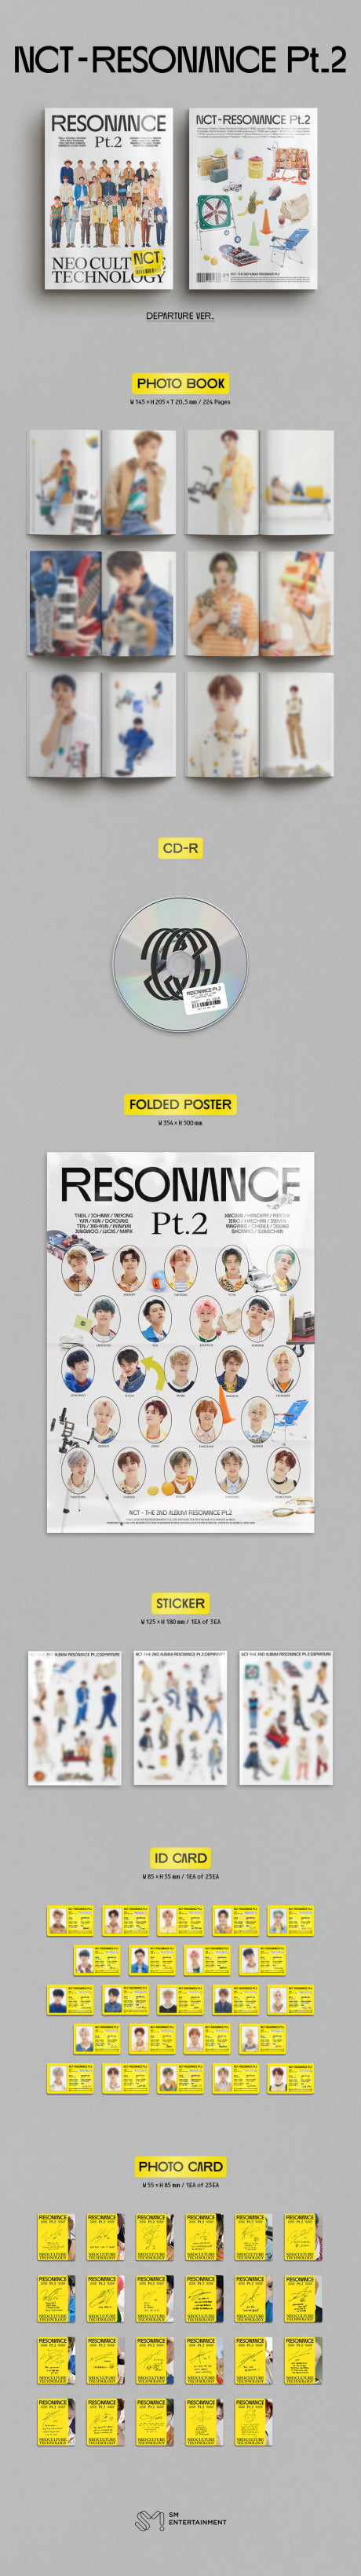 NCT - The 2nd Album RESONANCE Pt.2 Product Details